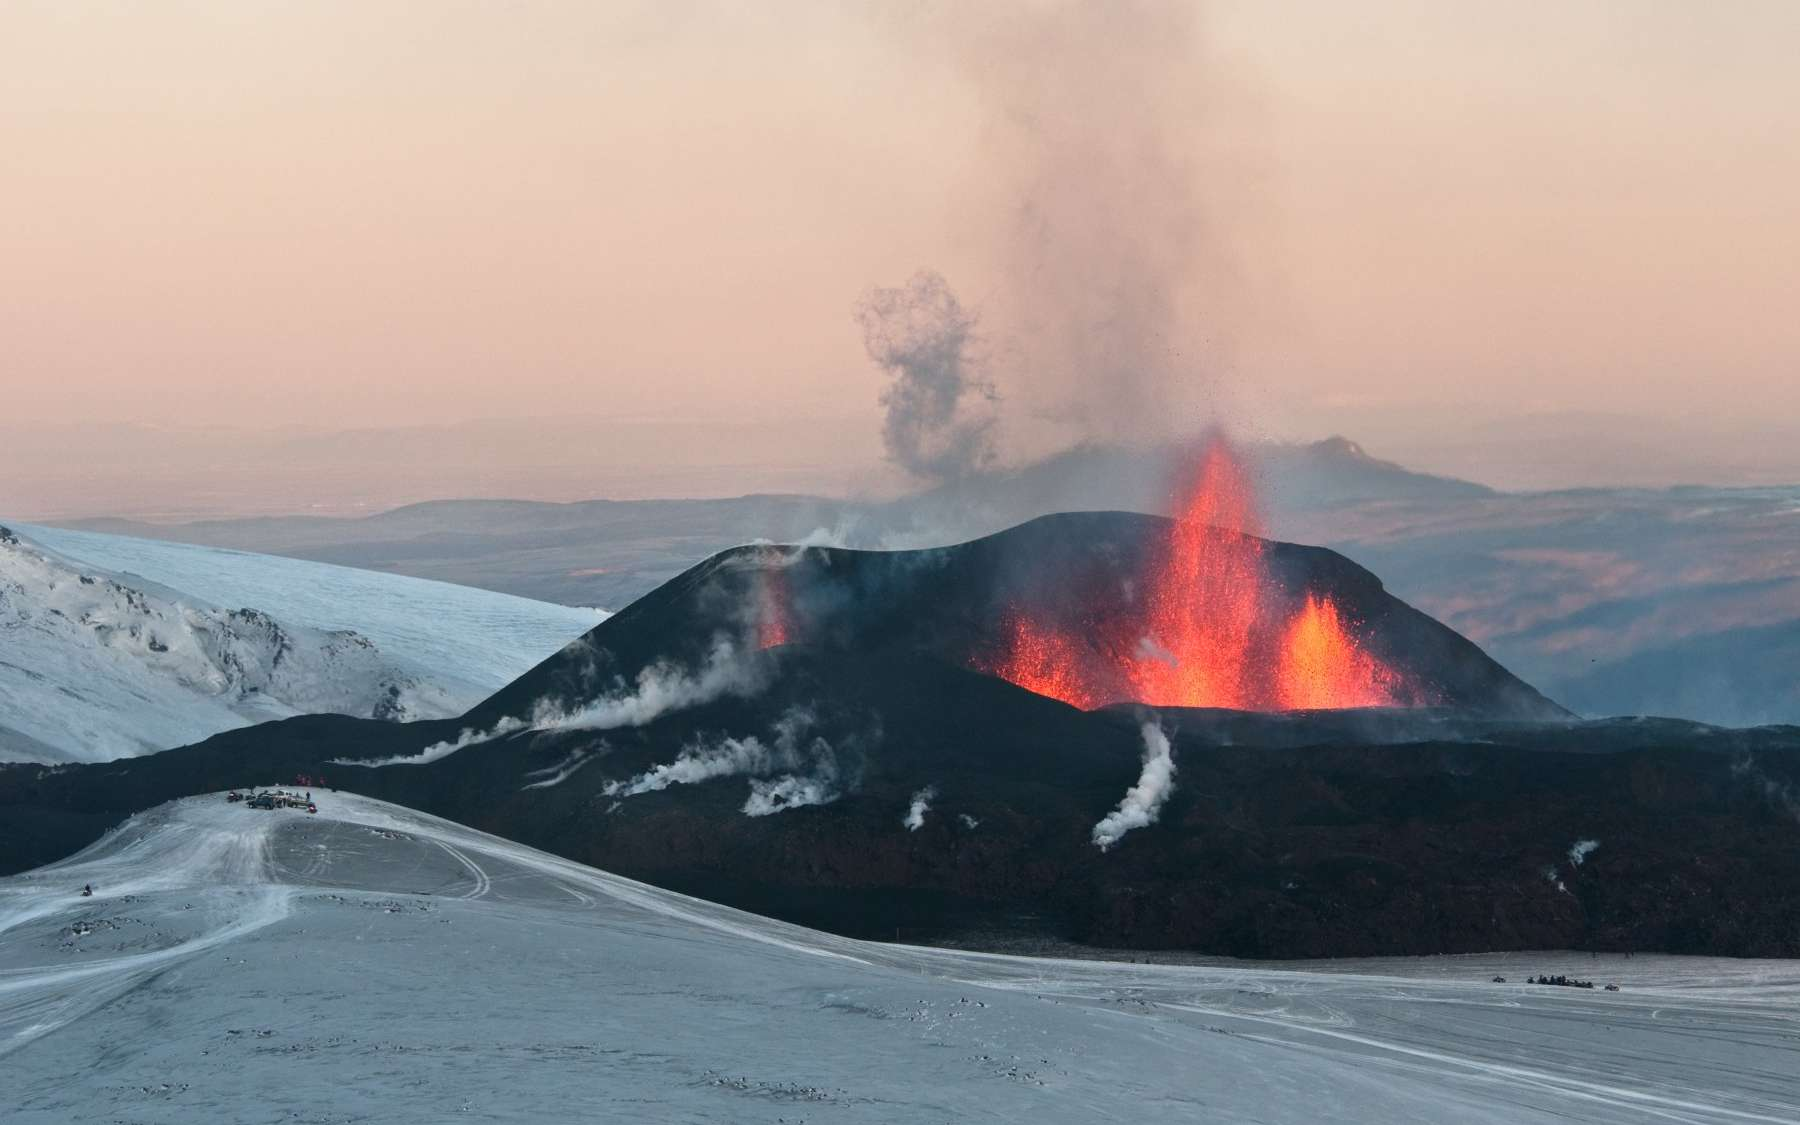 L'Eyjafjallajökull, volcan islandais, a engendré des orages volcaniques lors de son éruption en mars 2010. © David Karnå, licence Creative Commons Attribution 3.0